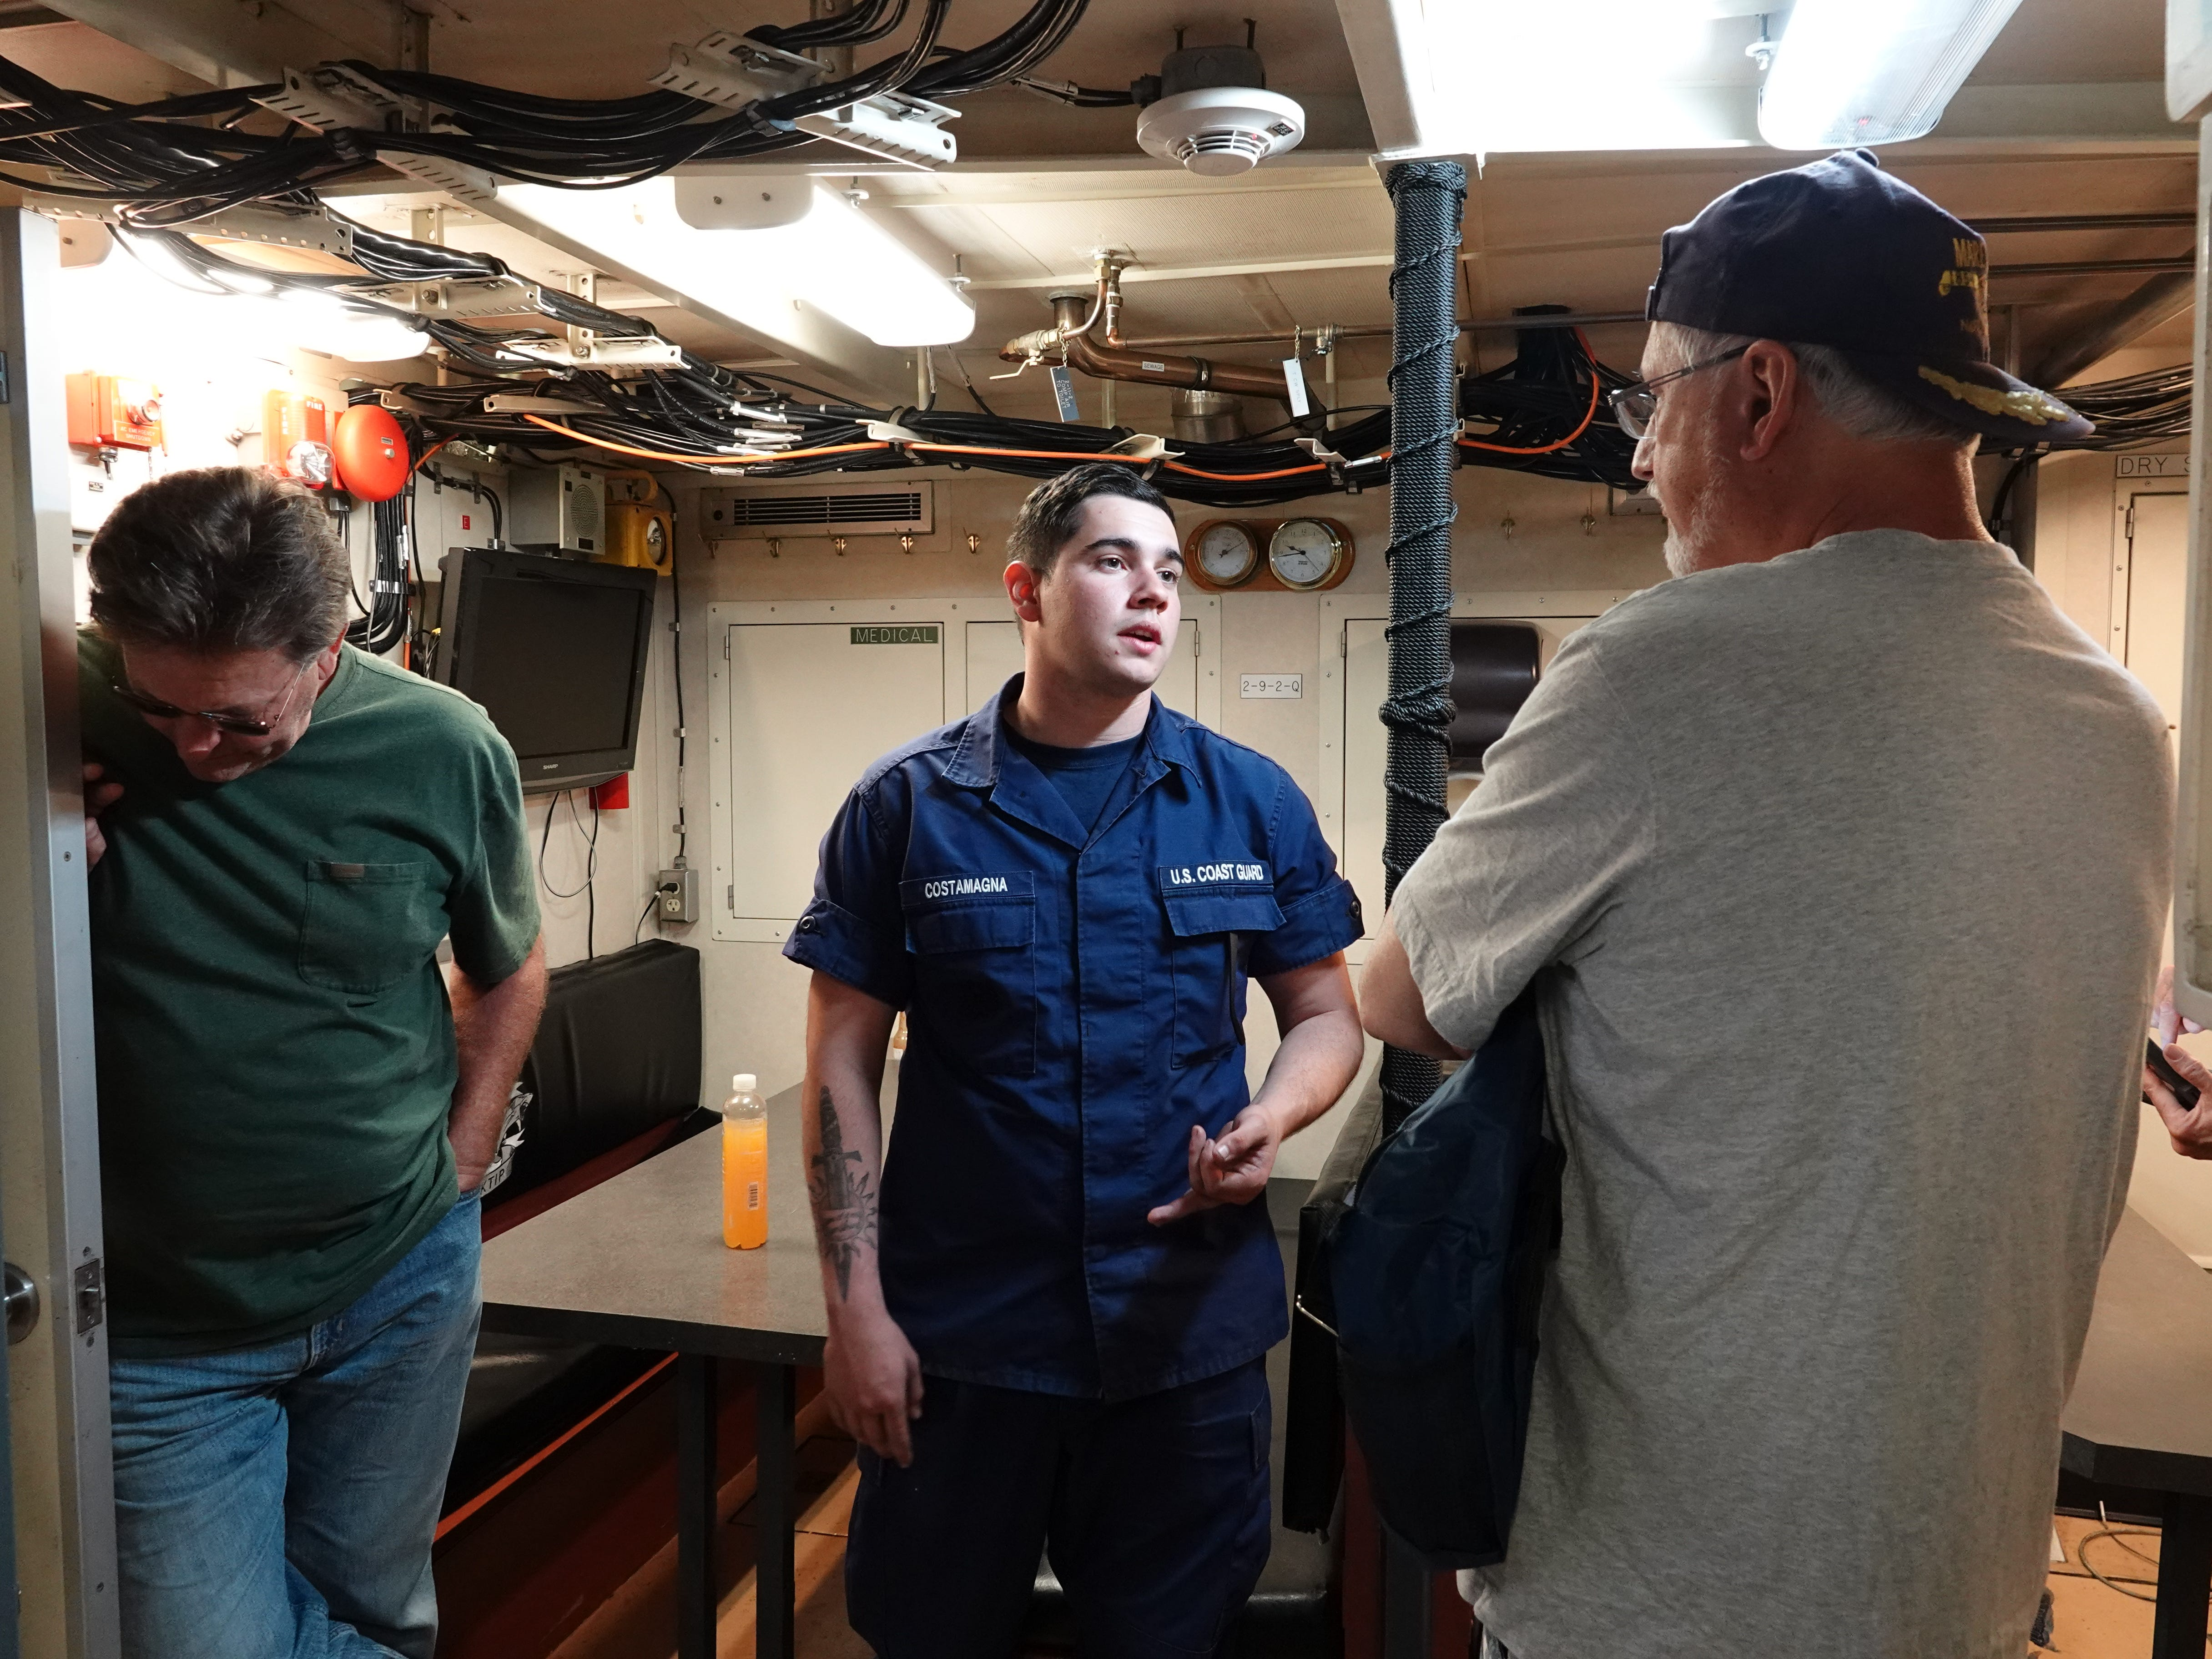 Coast Guard Fireman Chase Costamagna shows visitors the galley of the Blacktip, an 87-foot cutter, during Saturday's Safe Boating Expo at Channel Islands Harbor.